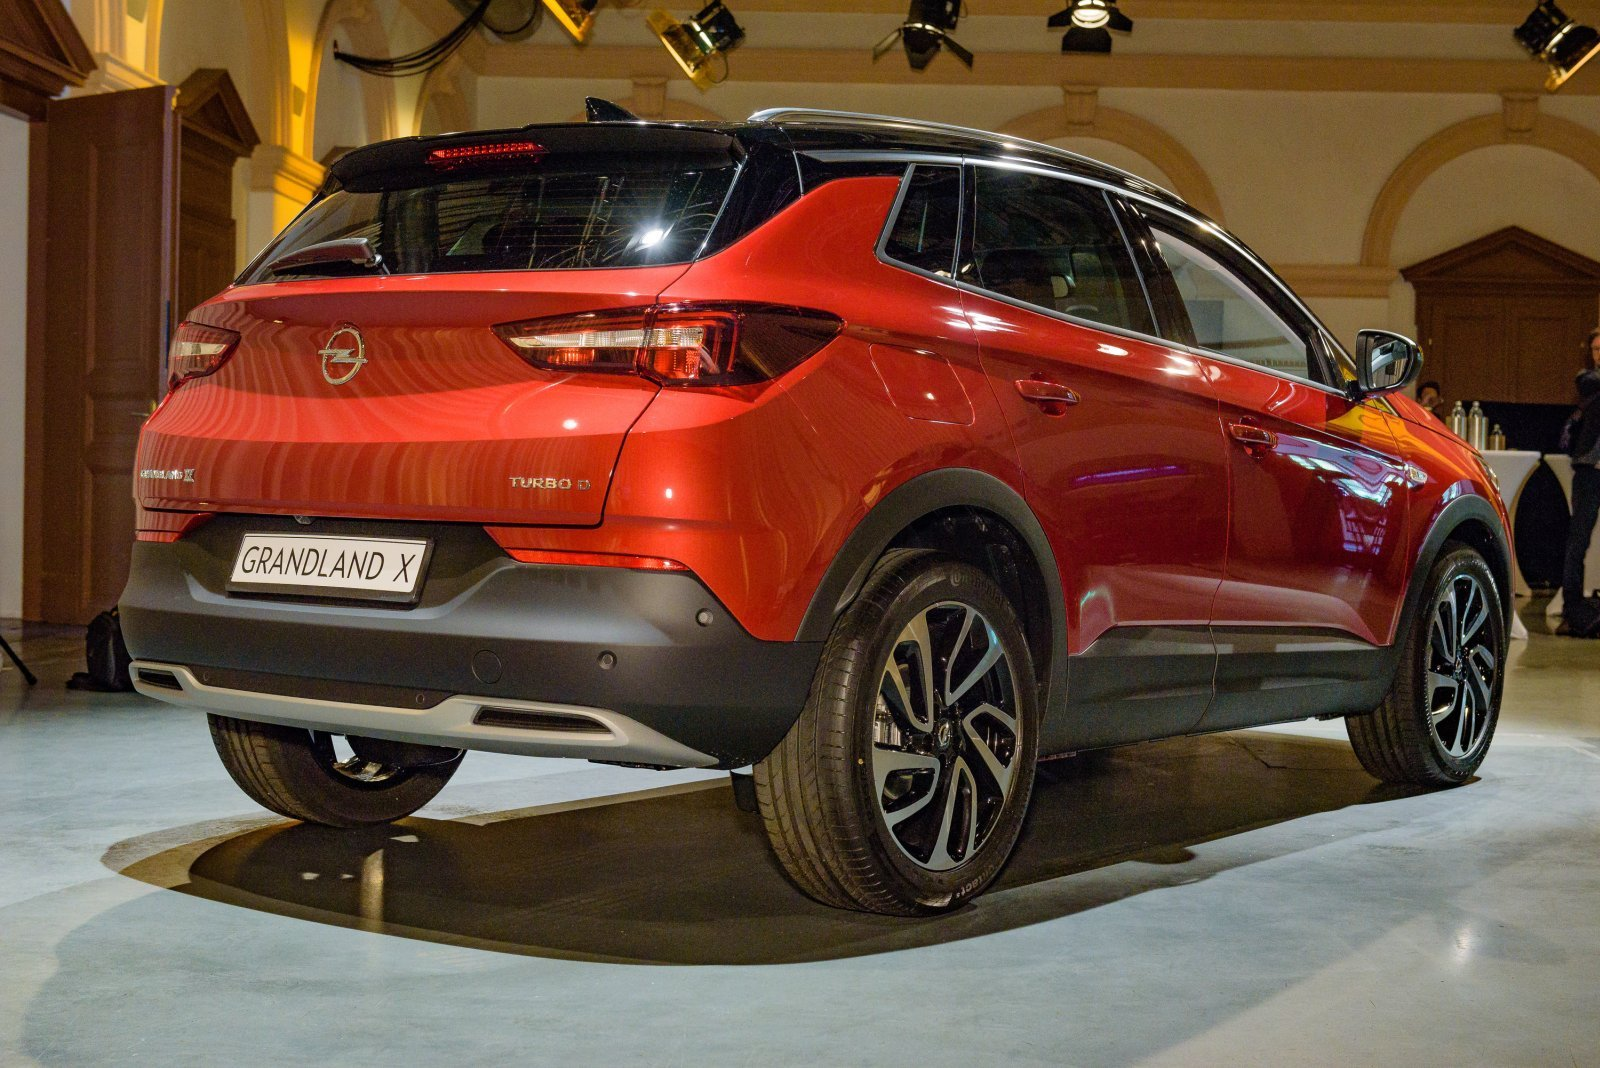 opel grandland x in wien enth llt alles auto. Black Bedroom Furniture Sets. Home Design Ideas